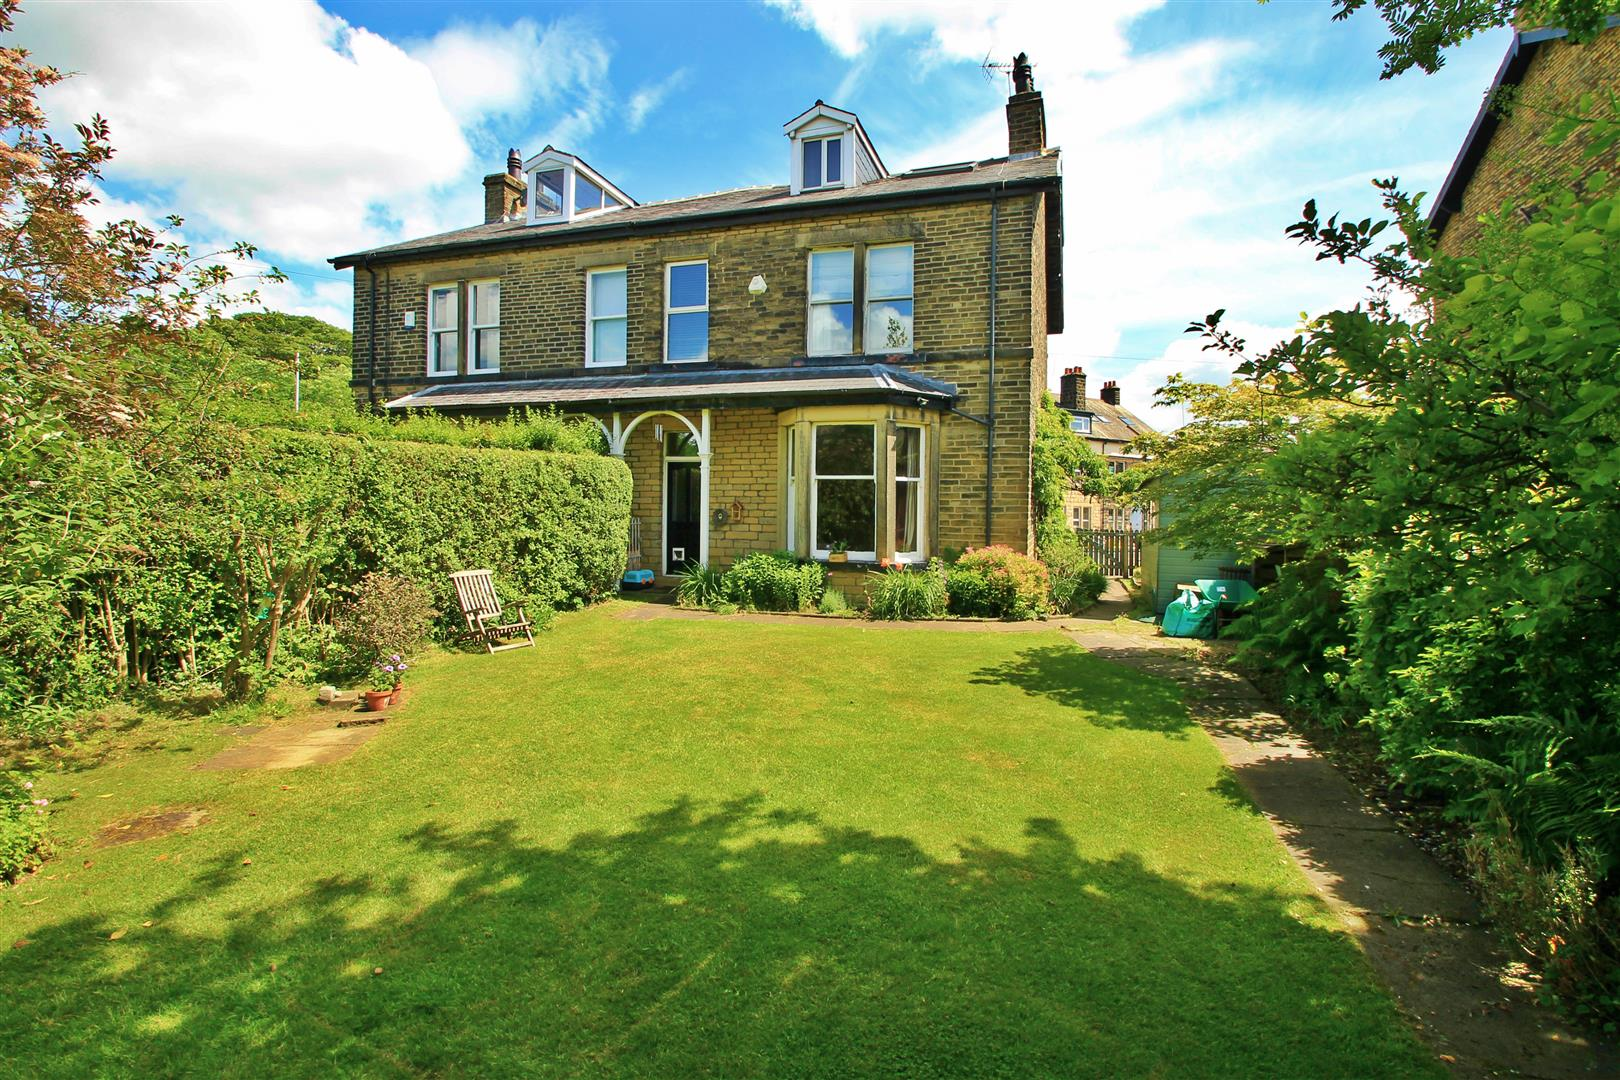 The Crescent, Ilkley, LS29 6DR